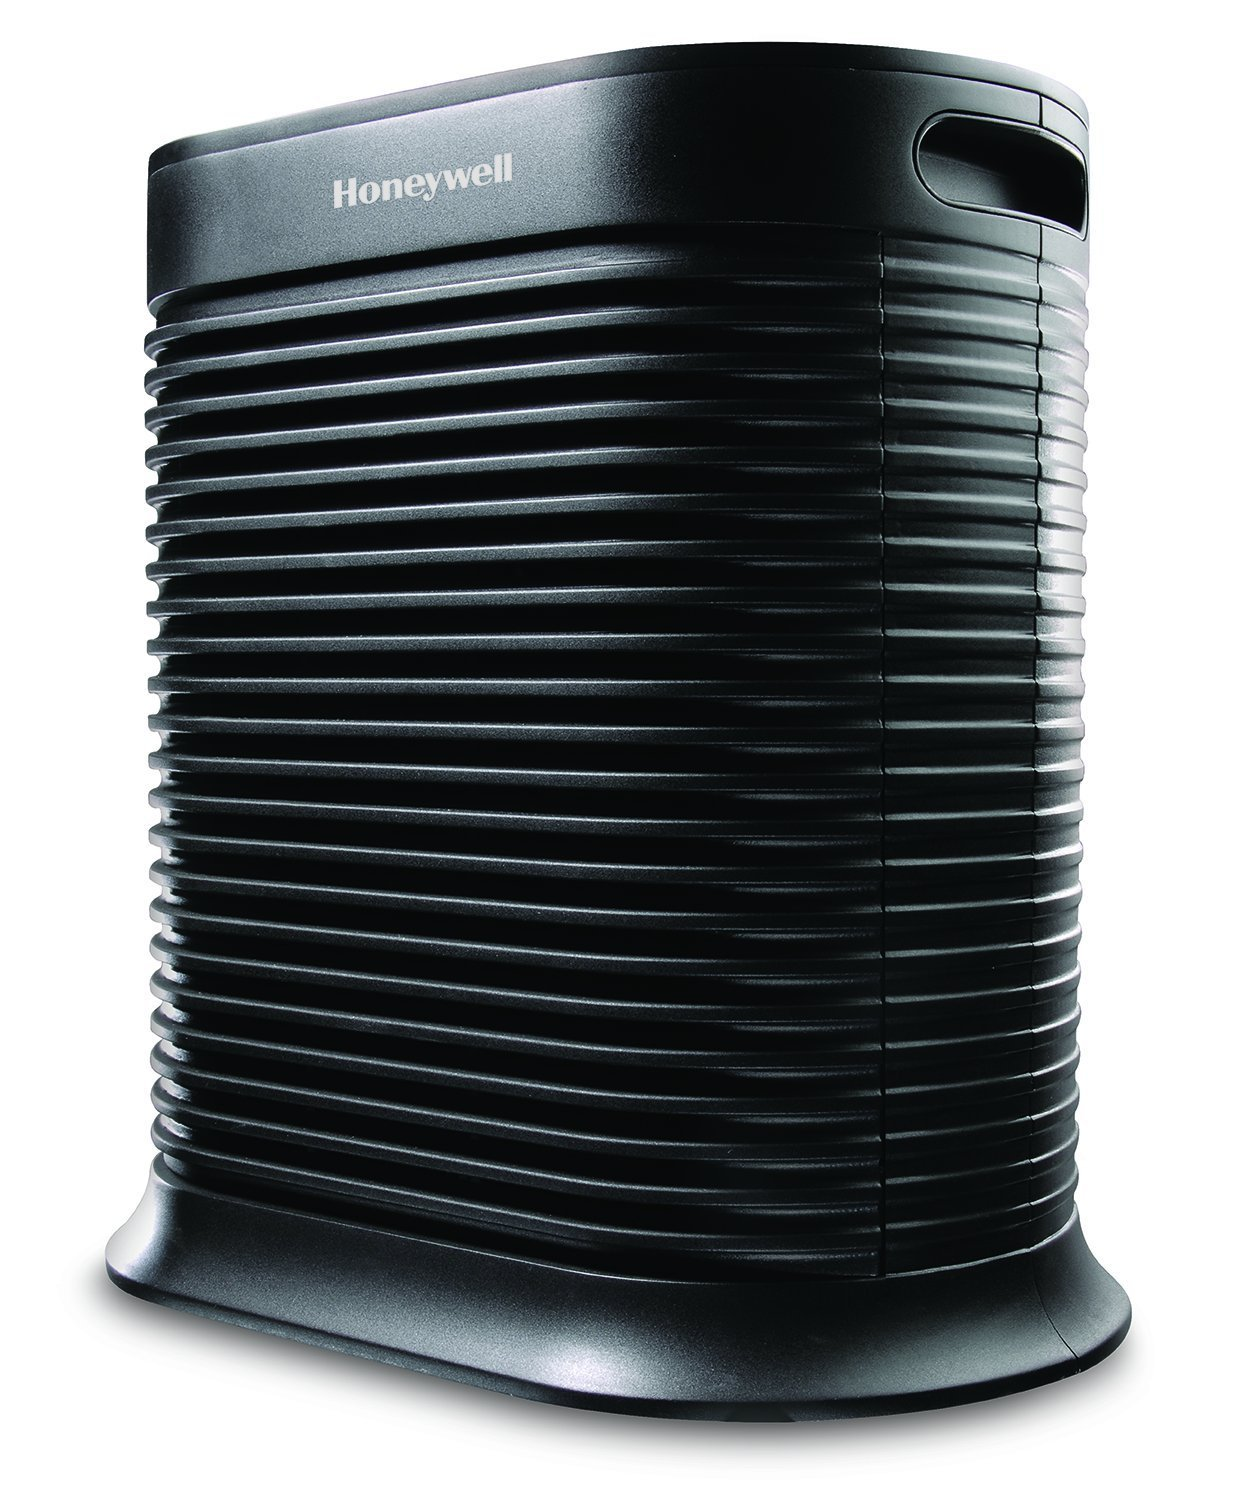 Review Honeywell Hpa 300